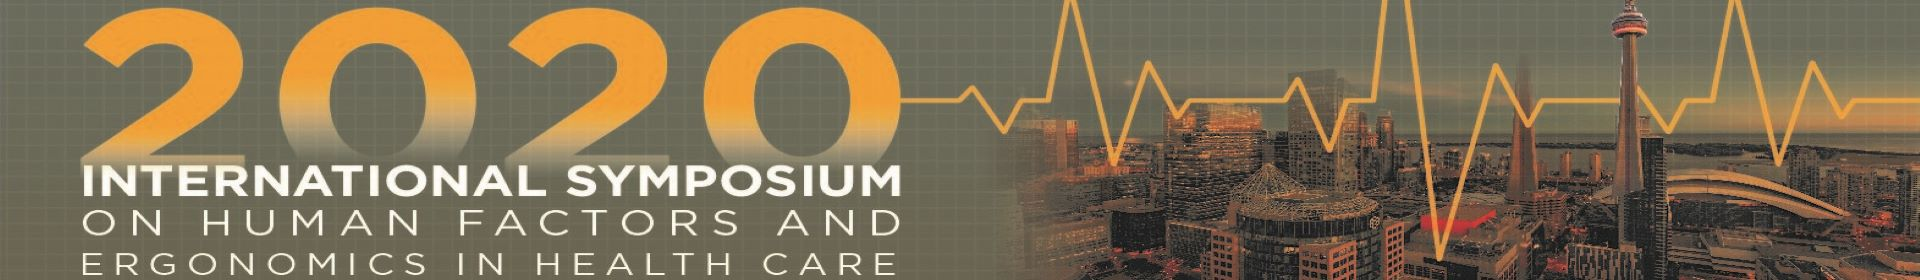 2020 International Symposium on Human Factors and Ergonomics in Health Care Event Banner